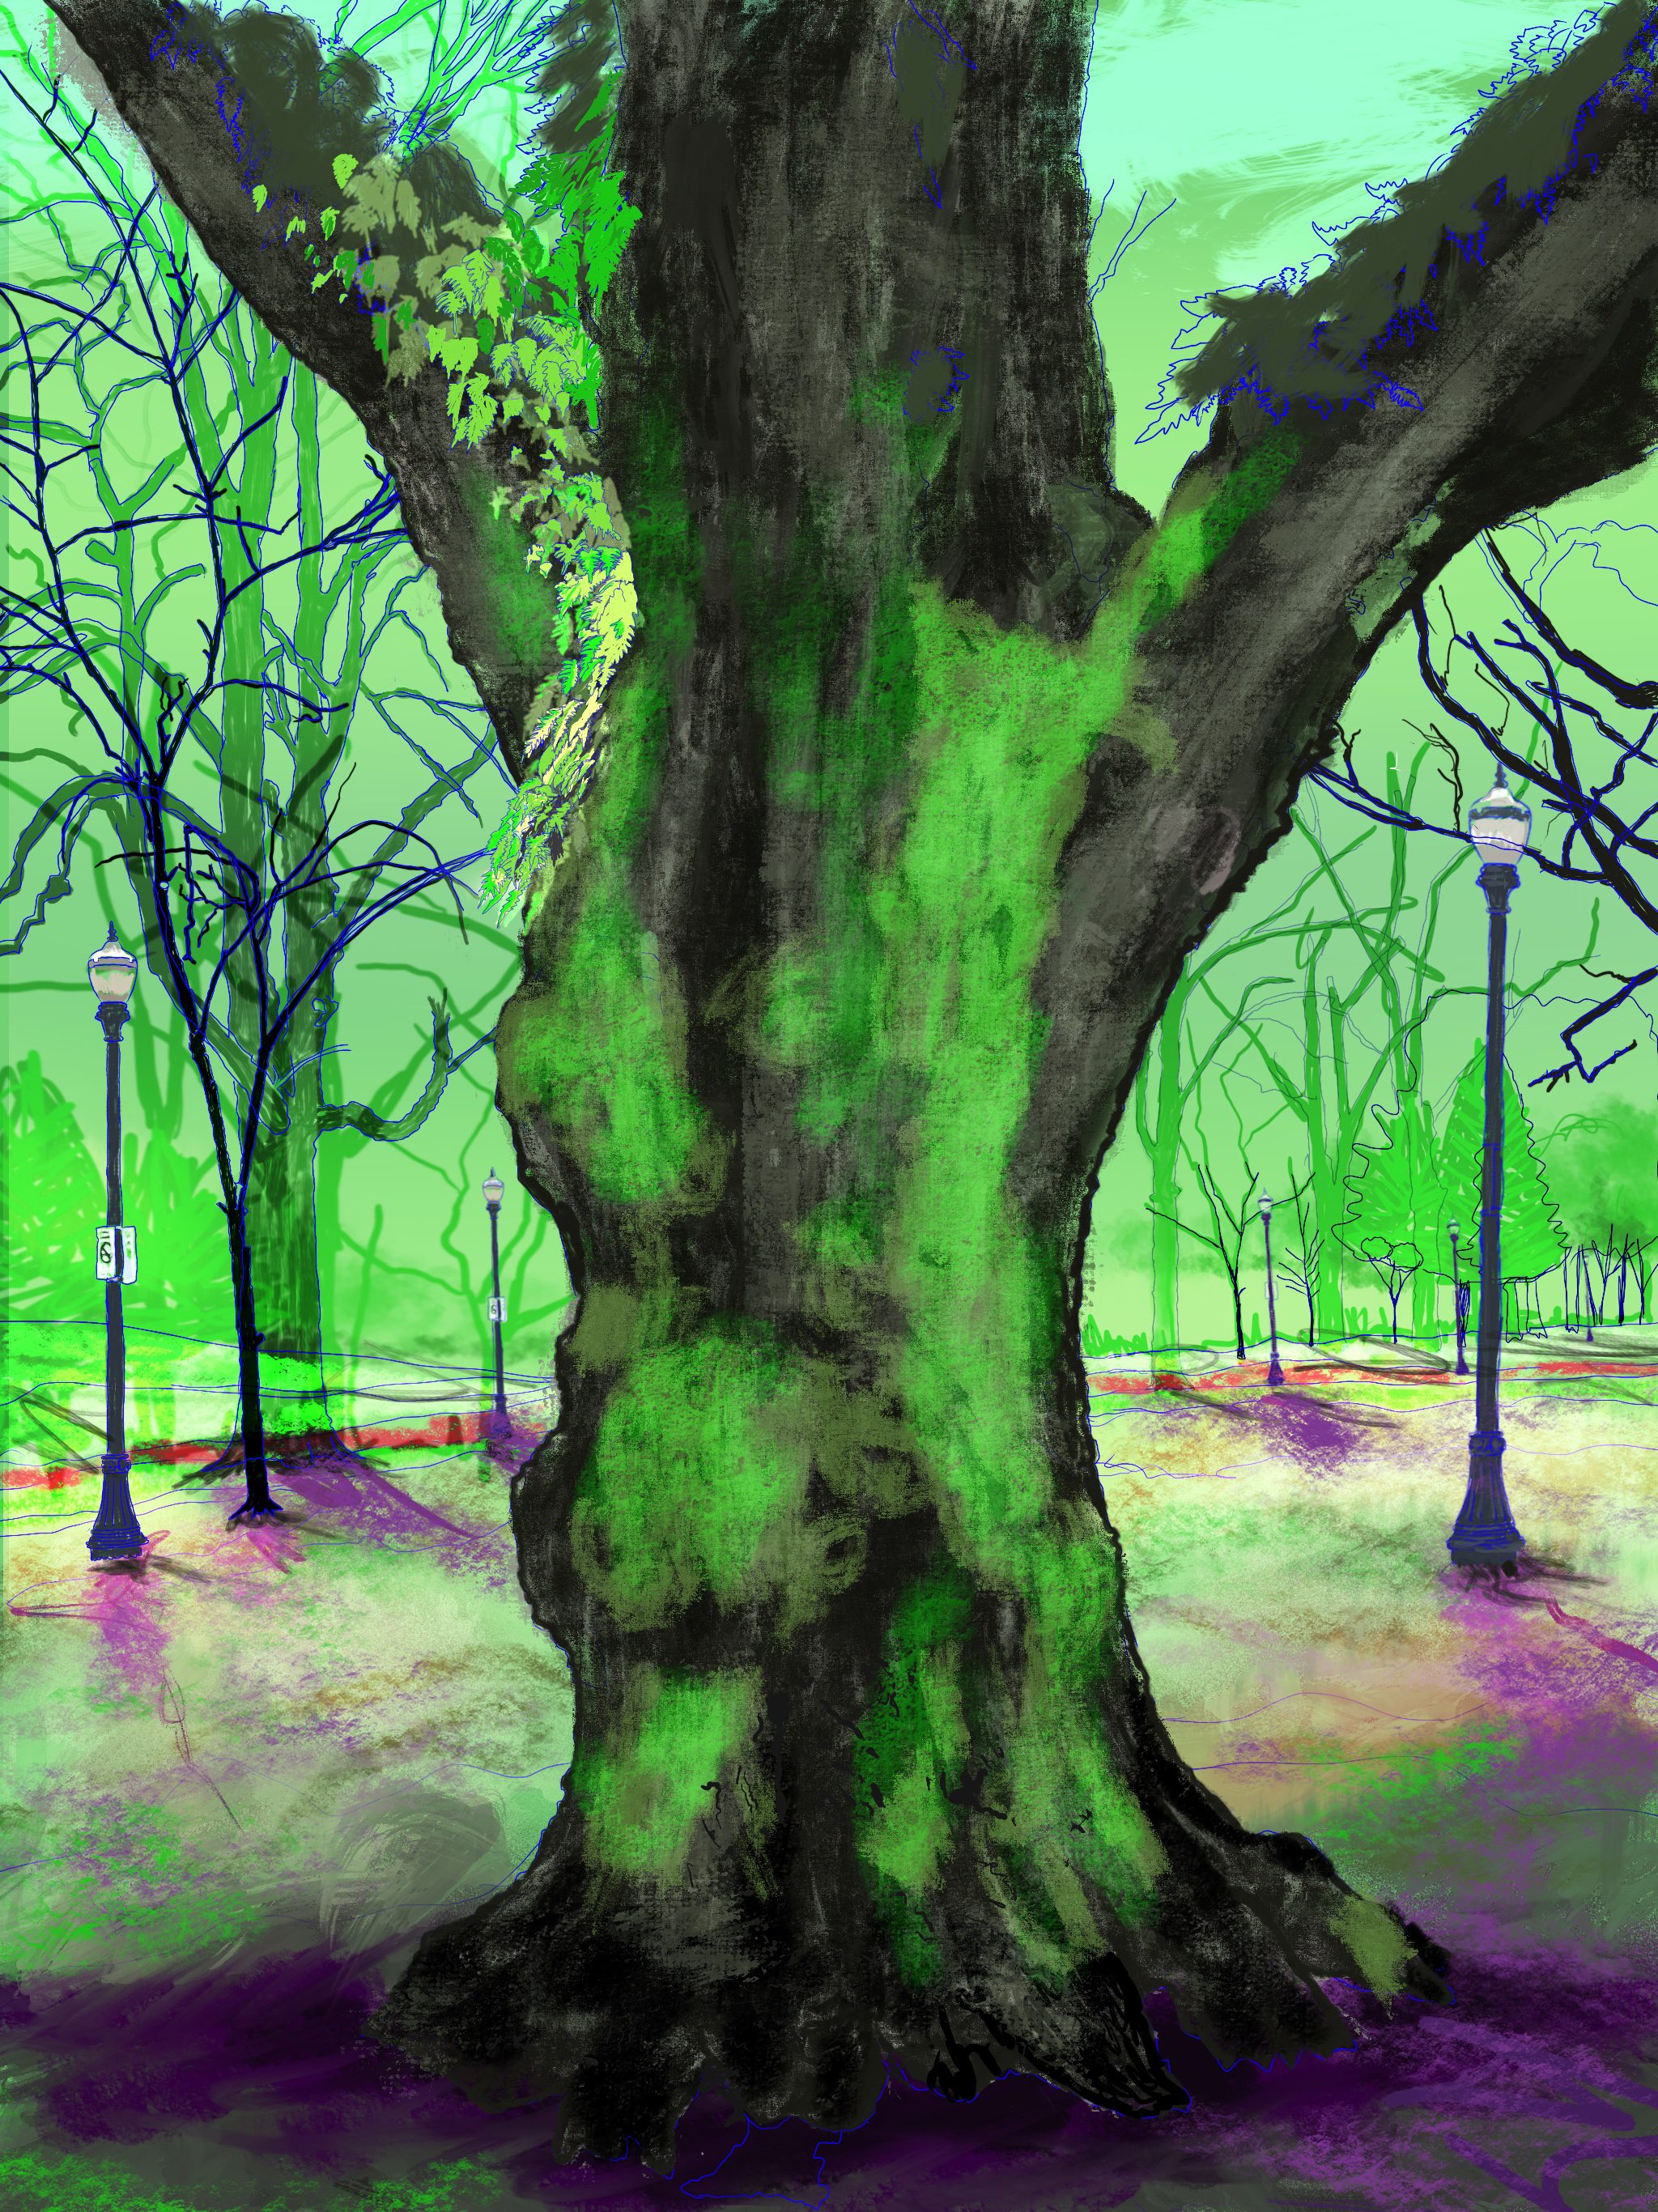 """Giant Moss Covered Tree,  North Park Blocks. Portland, OR   19""""x13"""", (48.26x33.02cm) Dimensions Variable   Electronics Painting, iPad, Procreate, © 2017"""